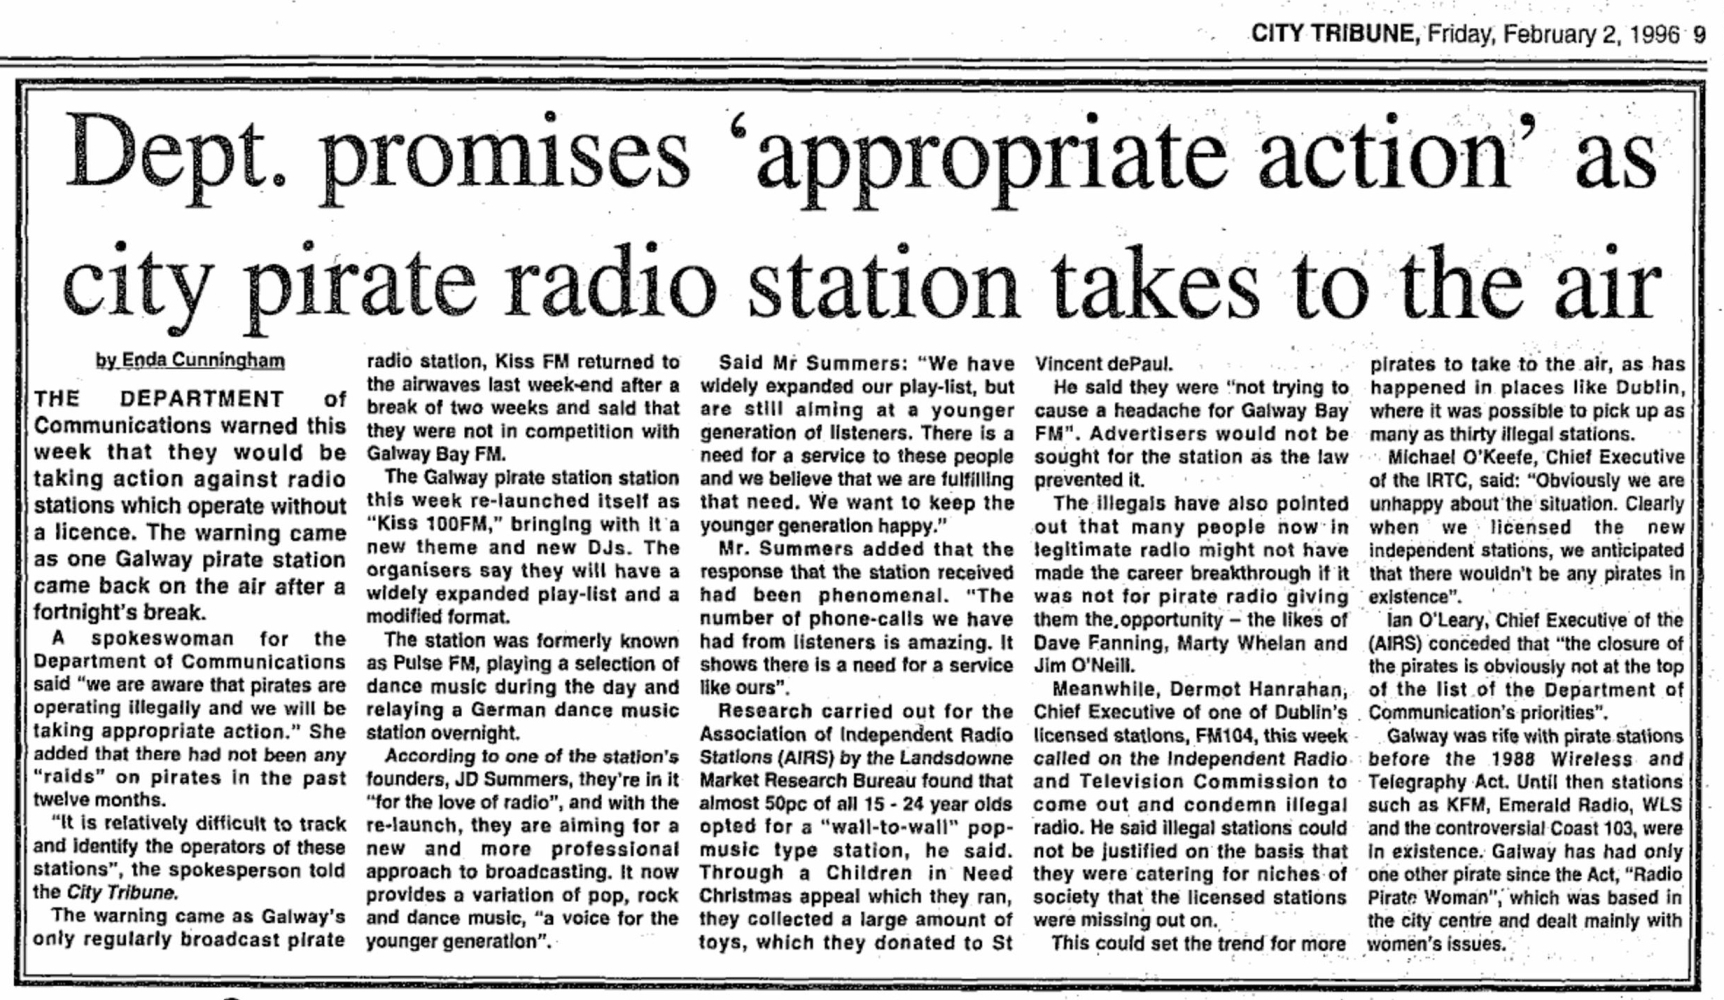 Dept promises 'appropriate action' as city pirate radio station takes to the air was a headline from The City Tribune dated February 2nd 1996